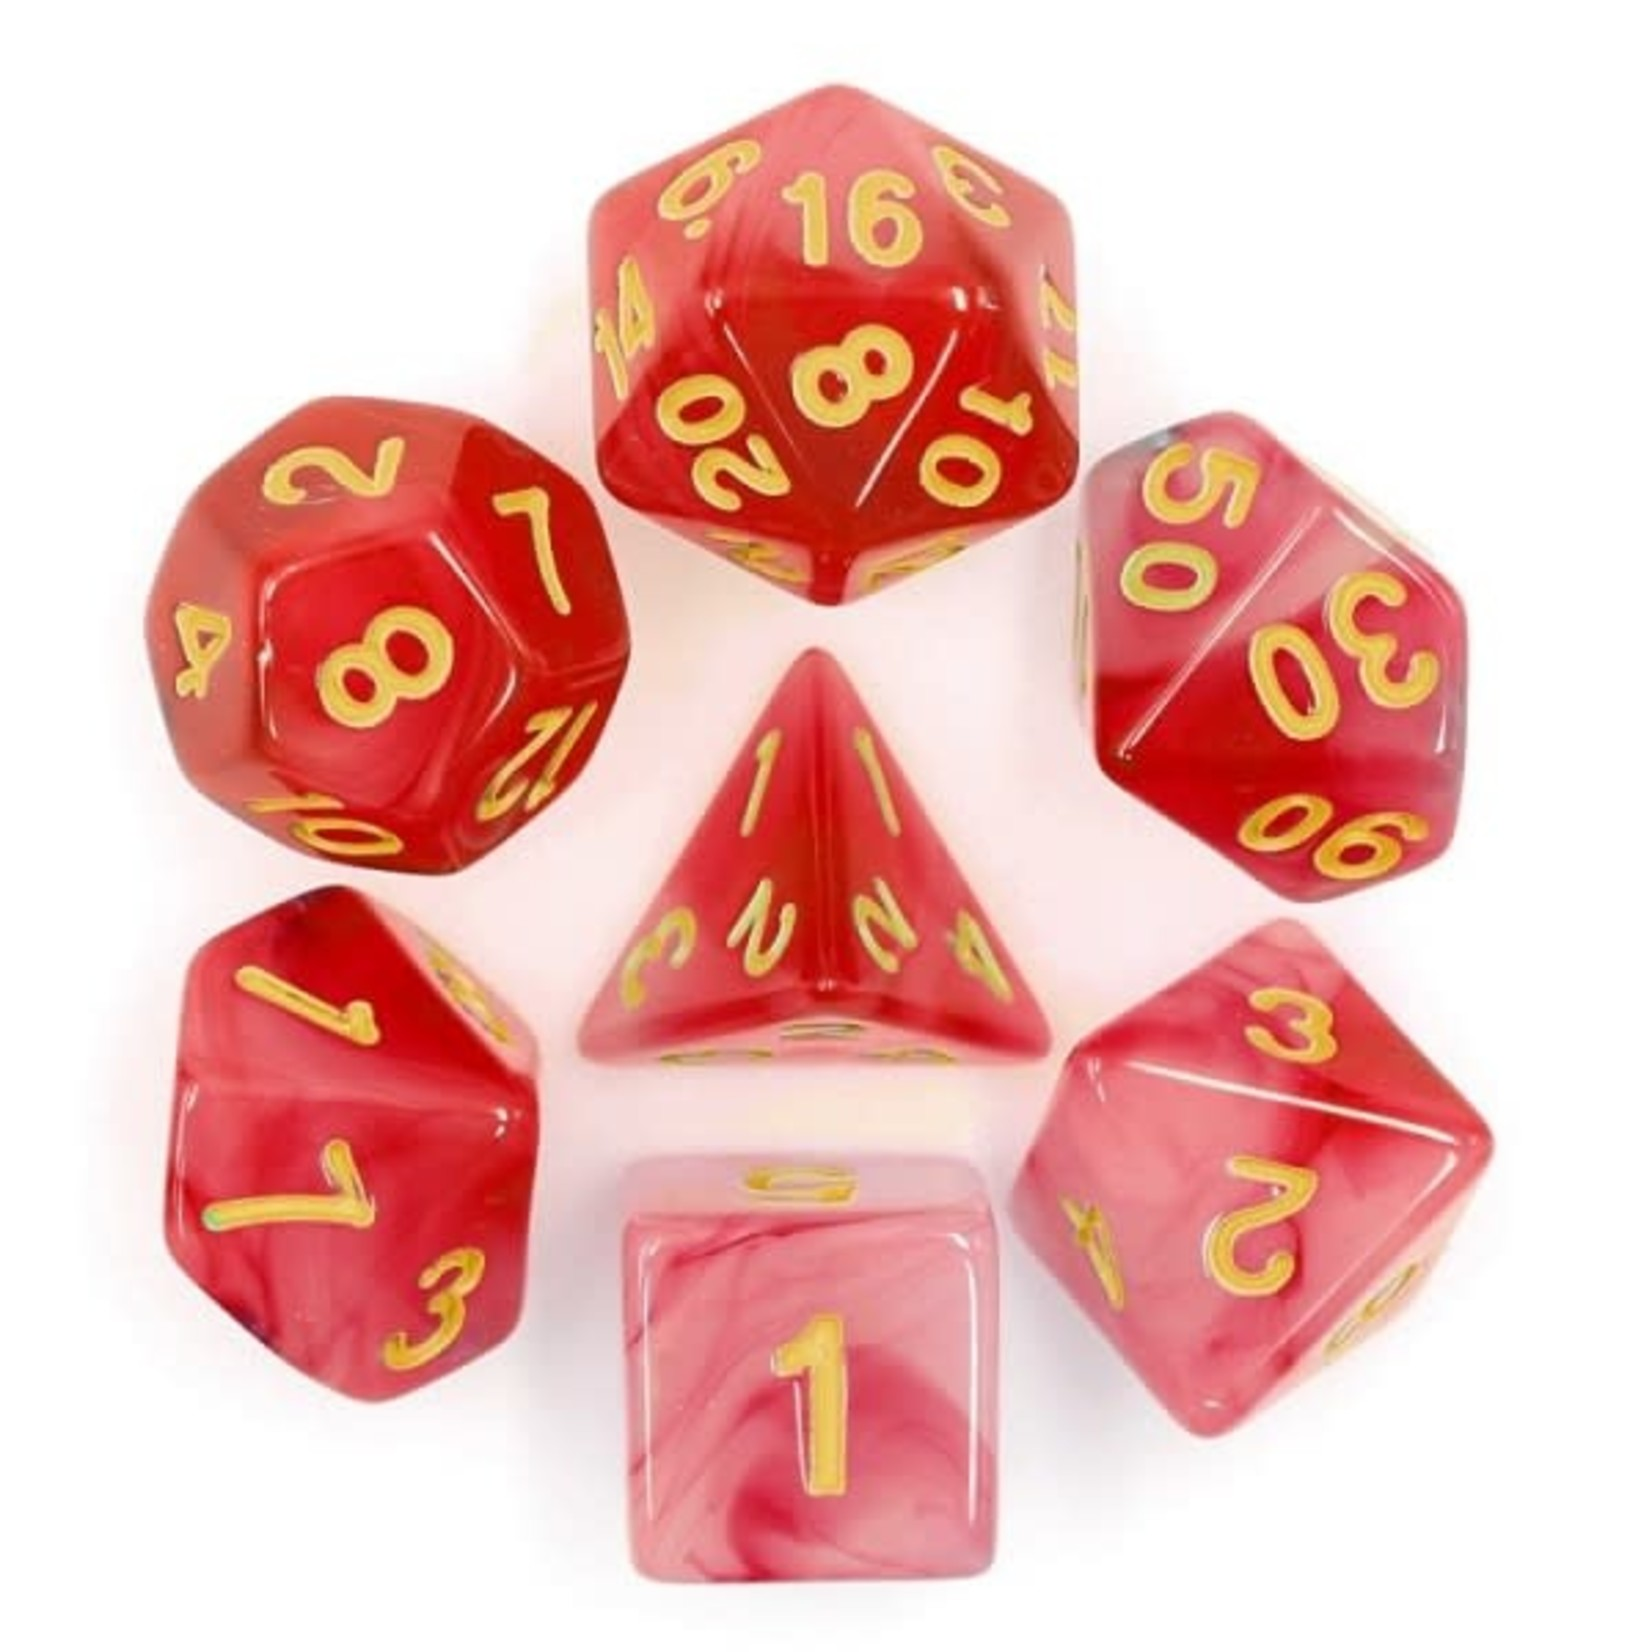 HD Dice 7-Set Milky Red with Gold Numbers